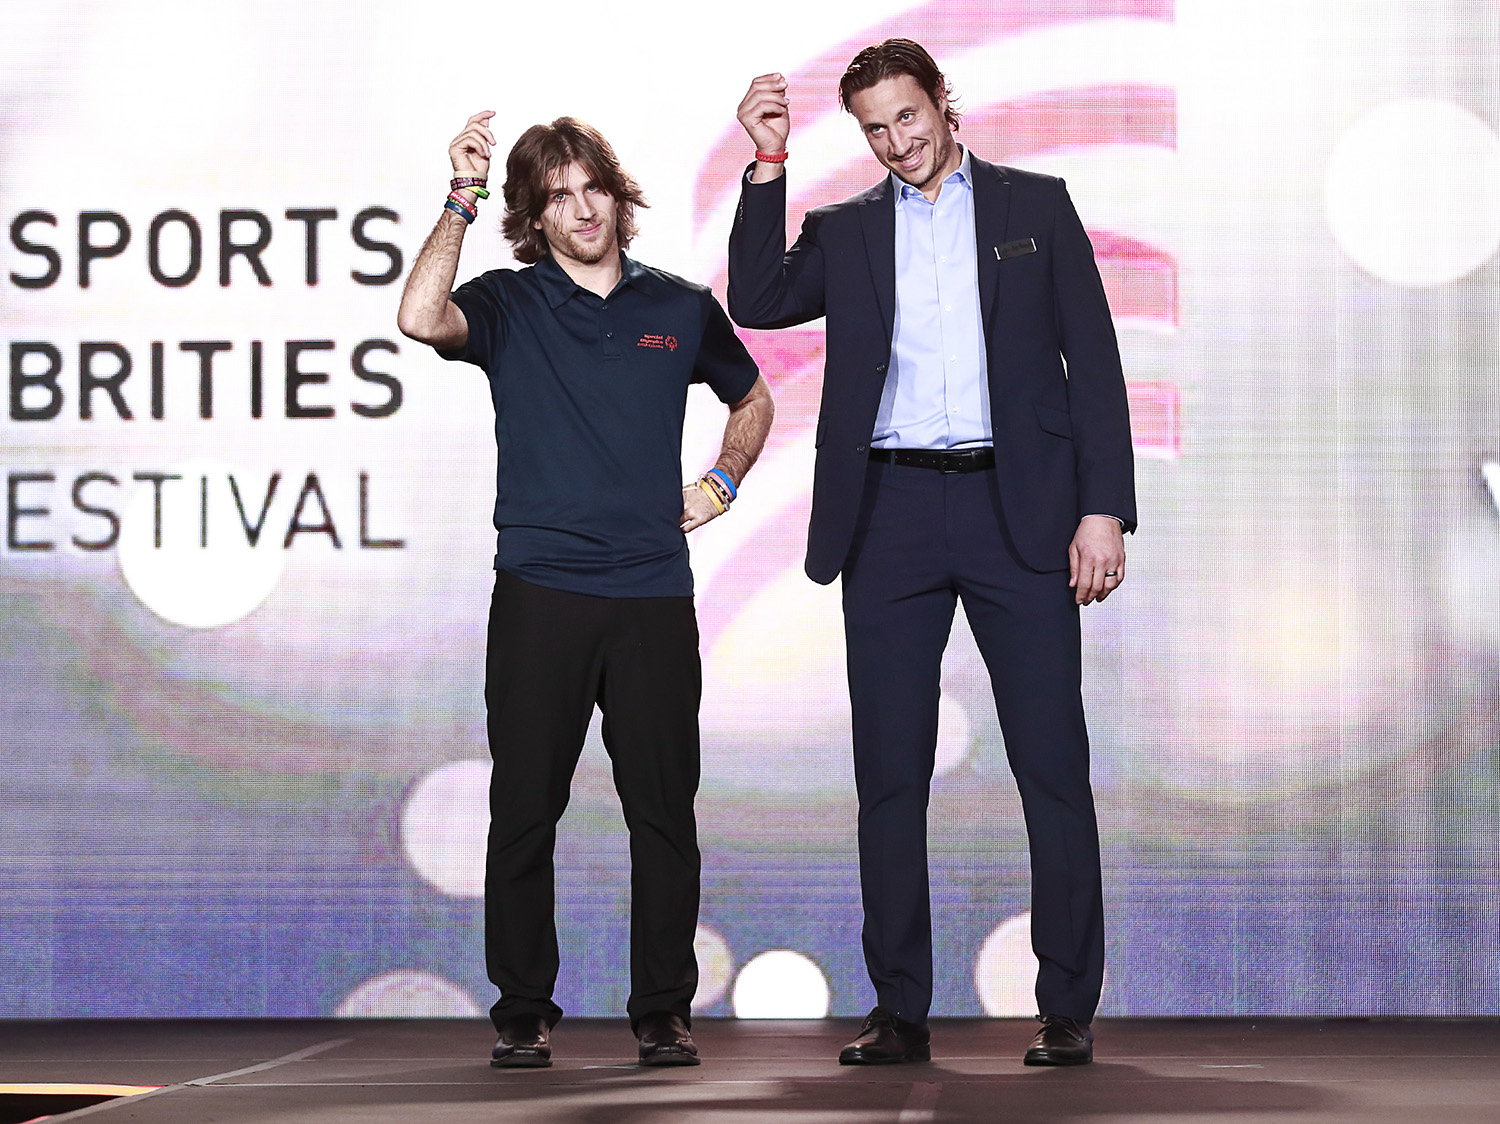 Jay Beagle and a Special Olympics athlete at the 2019 SCF